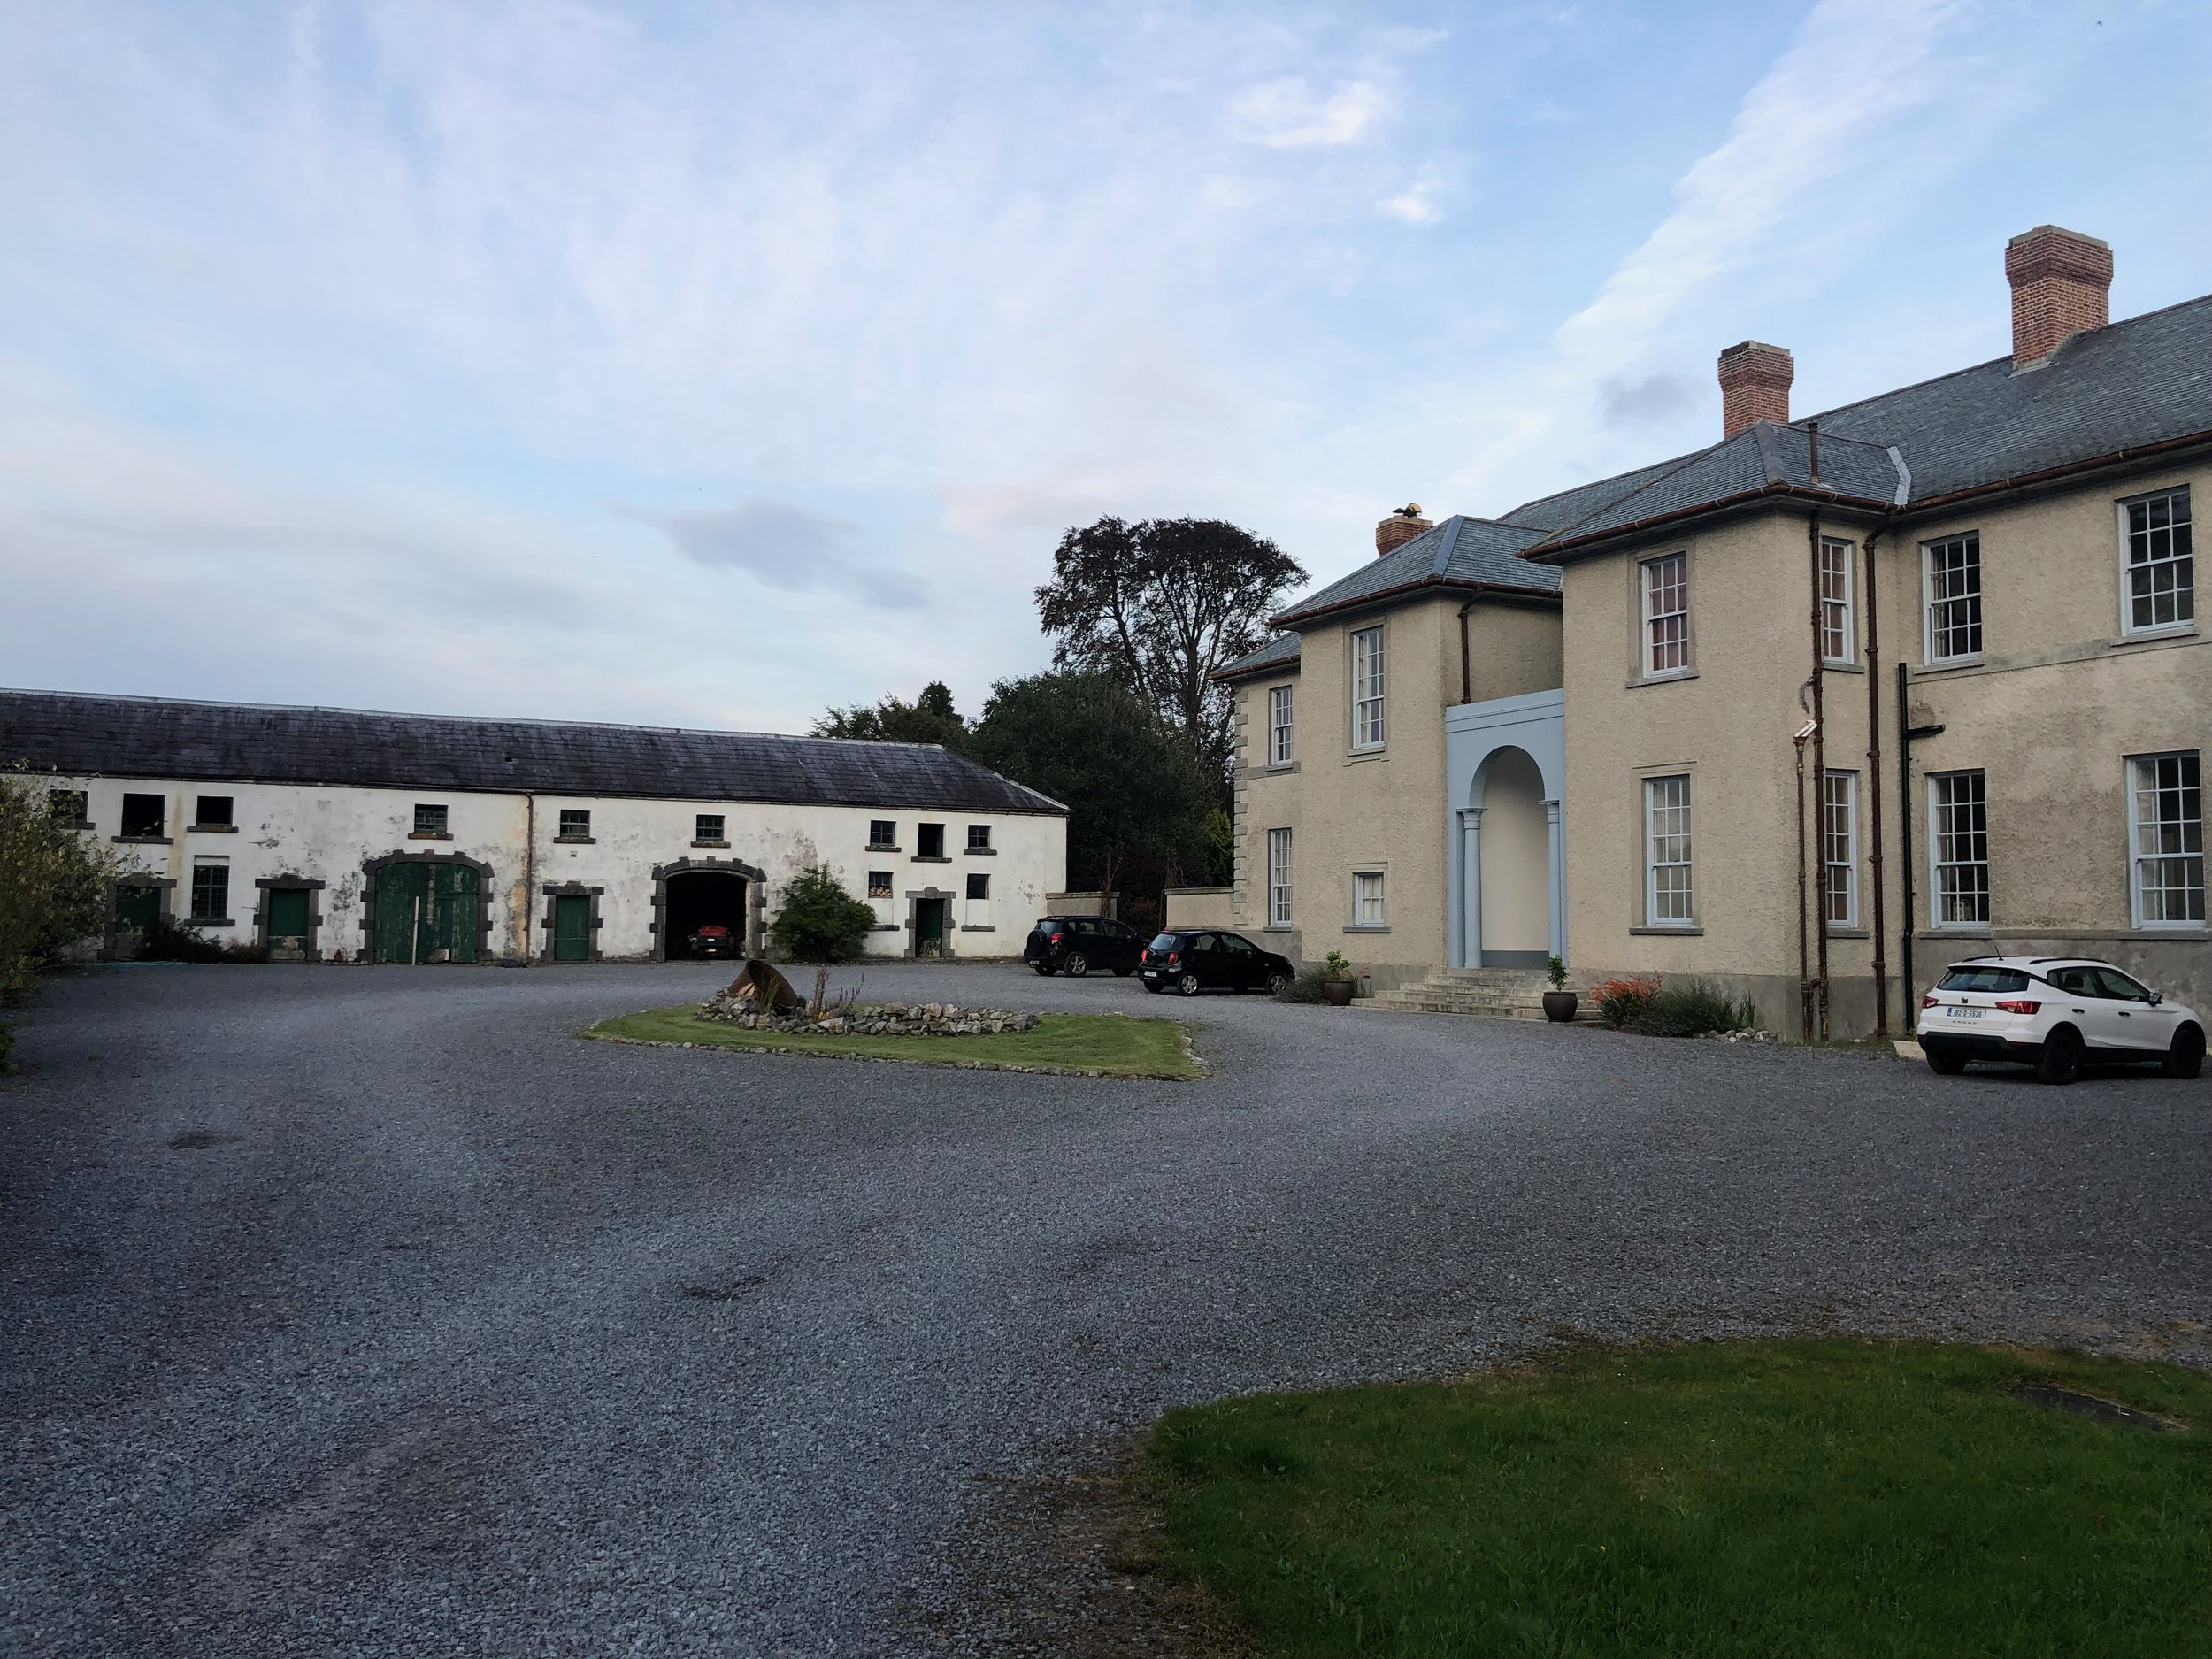 One of the most interesting places we stayed was Castle Hackett located 30-40 miles north of Galway. It was a fantastic place with large beautiful rooms and a friendly hostess who made us feel right at home. The castle was by built in 1703 by an Irishman who was also a General in the British army. One of its claims to fame is an English King once stayed at the castle.